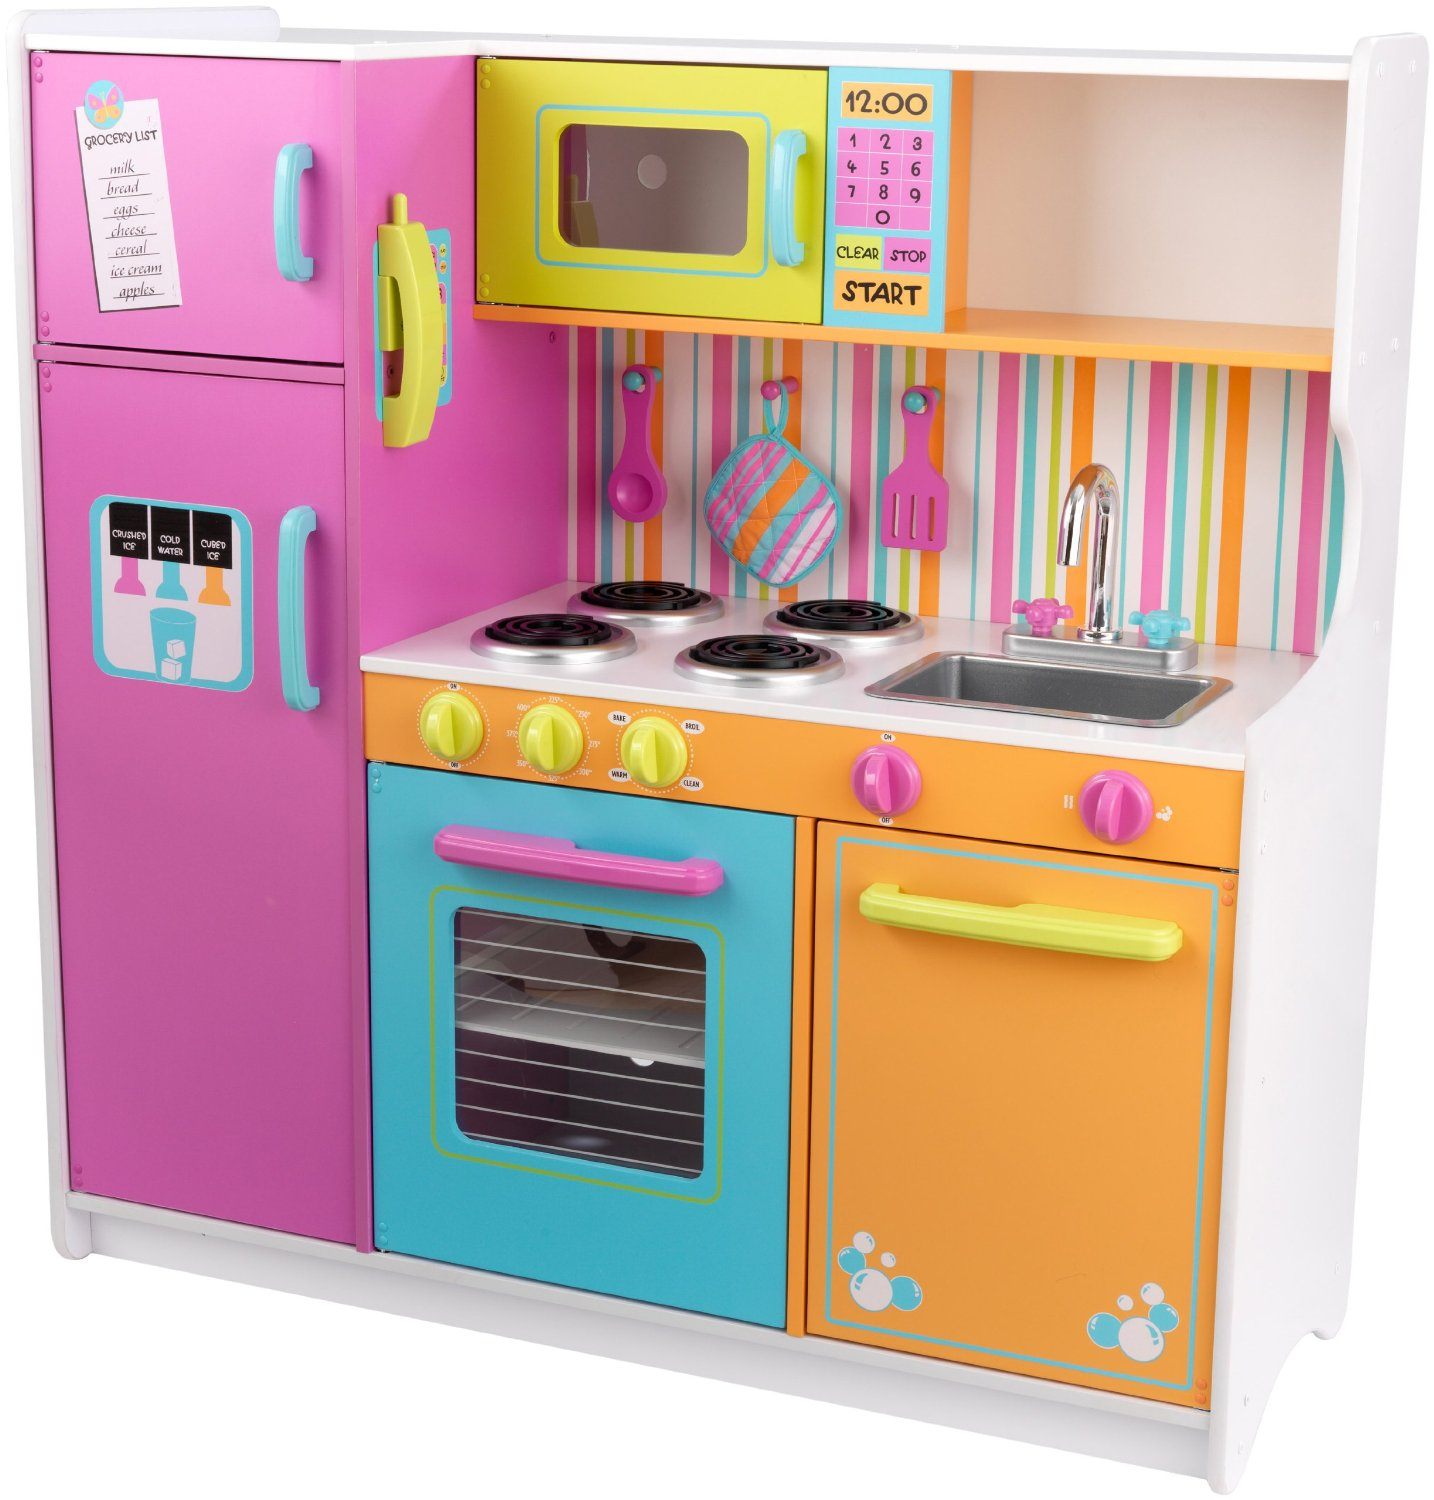 Kids kitchen stool photo - 1